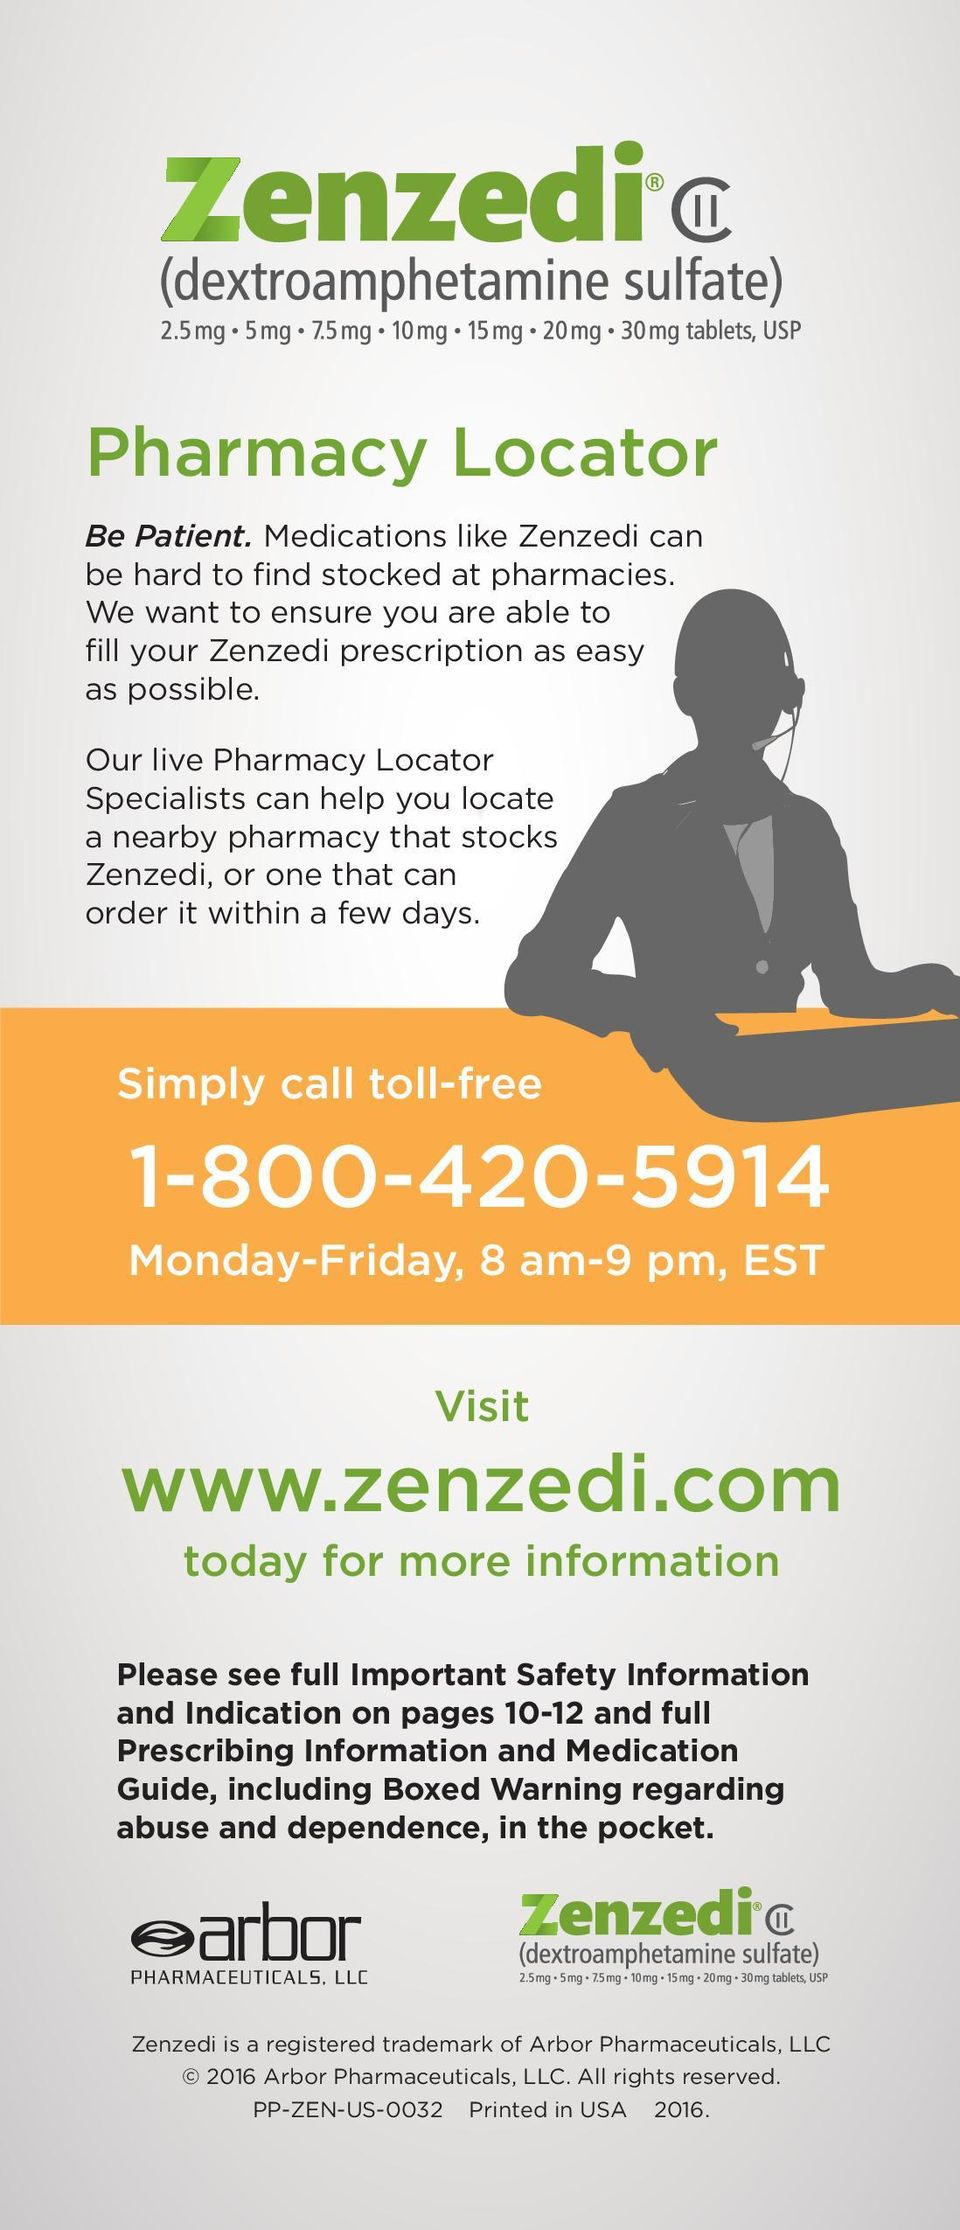 Simply call toll-free 1-800-420-5914 Monday-Friday, 8 am-9 pm, EST Visit www.zenzedi.